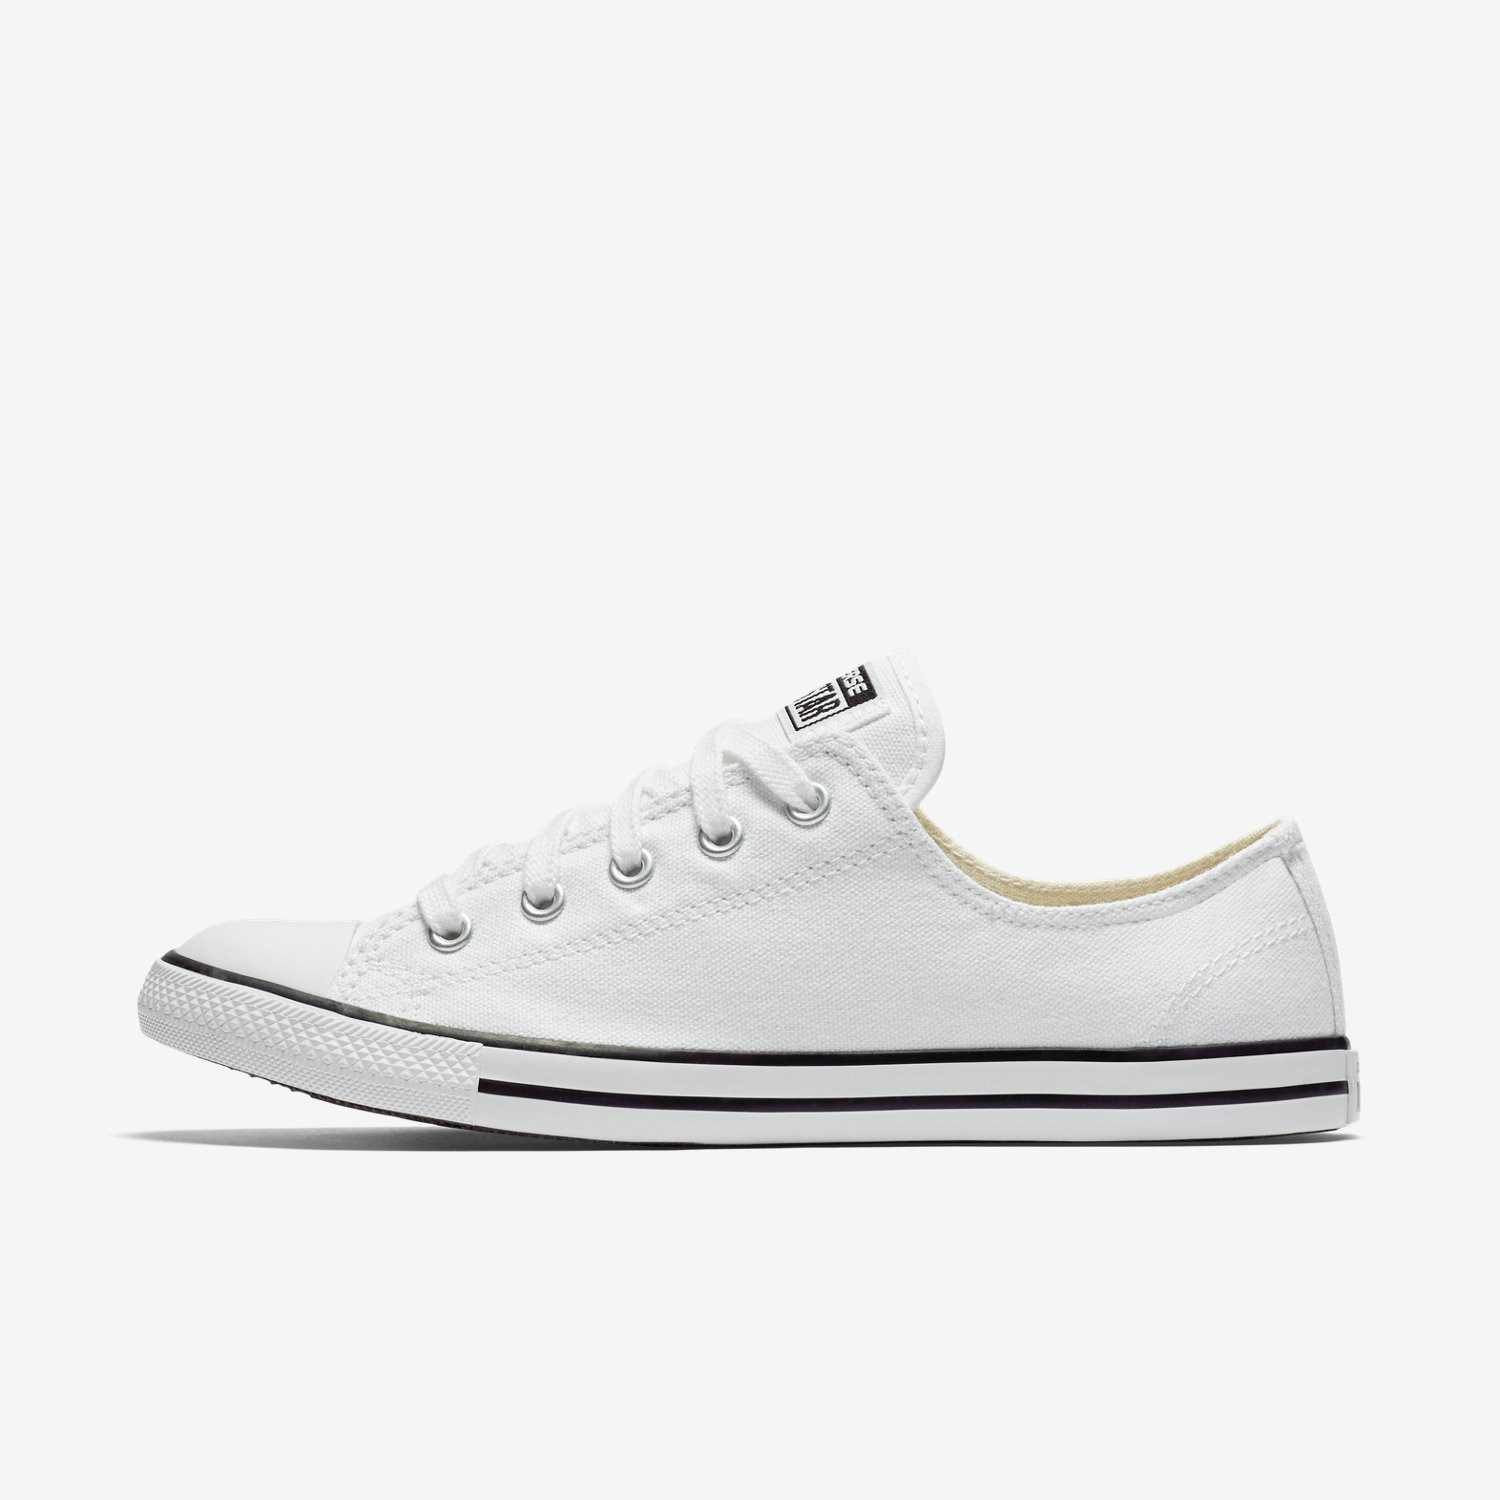 Special Prices on Women's Converse Chuck Taylor All Star